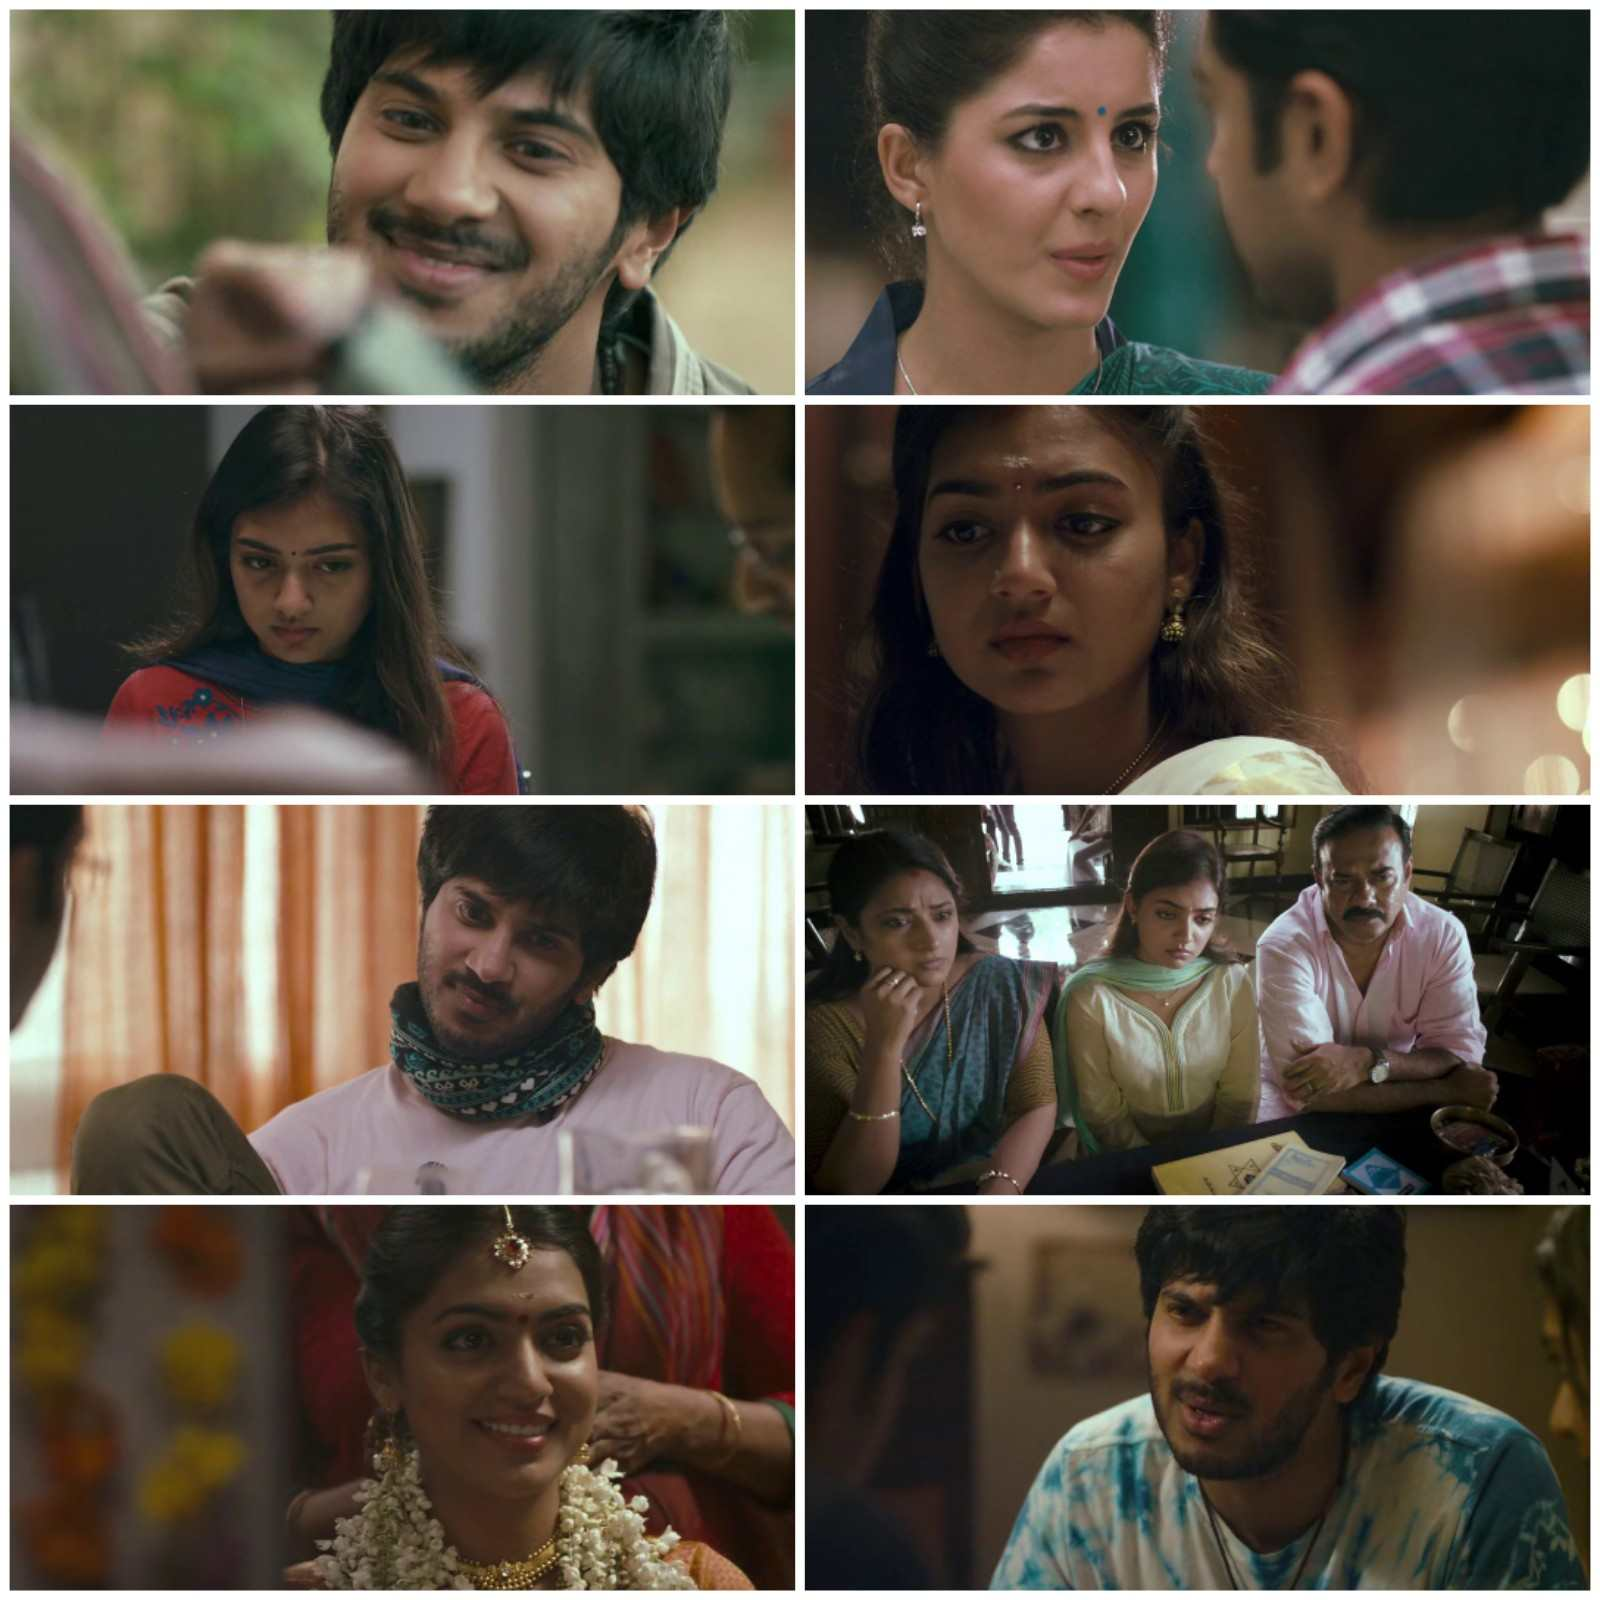 Screenshot Of Bangalore-Days-2021-WEB-DL-South-Dubbed-Dual-Audio-Hindi-HQ-VoiceOver-And-Malayalam-Full-Movie-Download-In-Hd